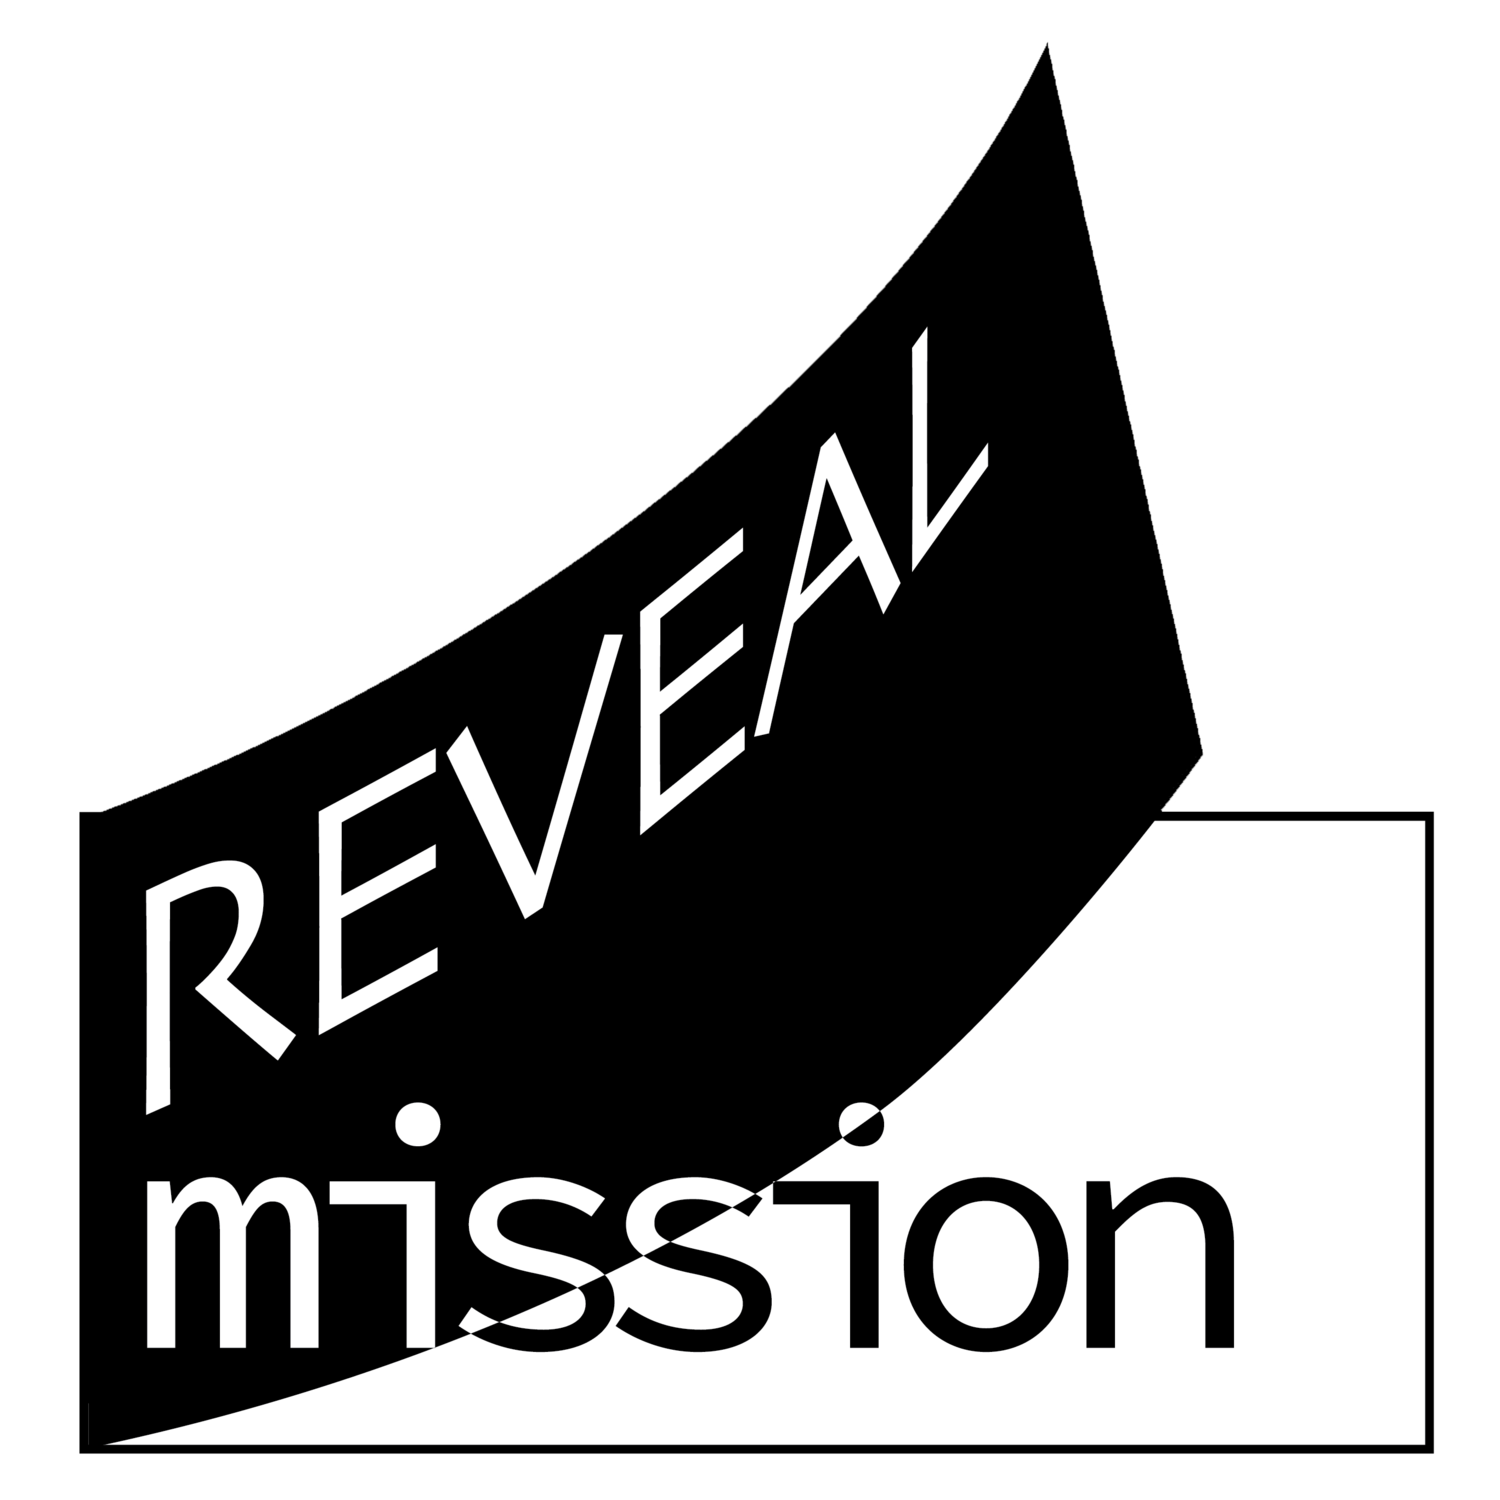 The Reveal Mission